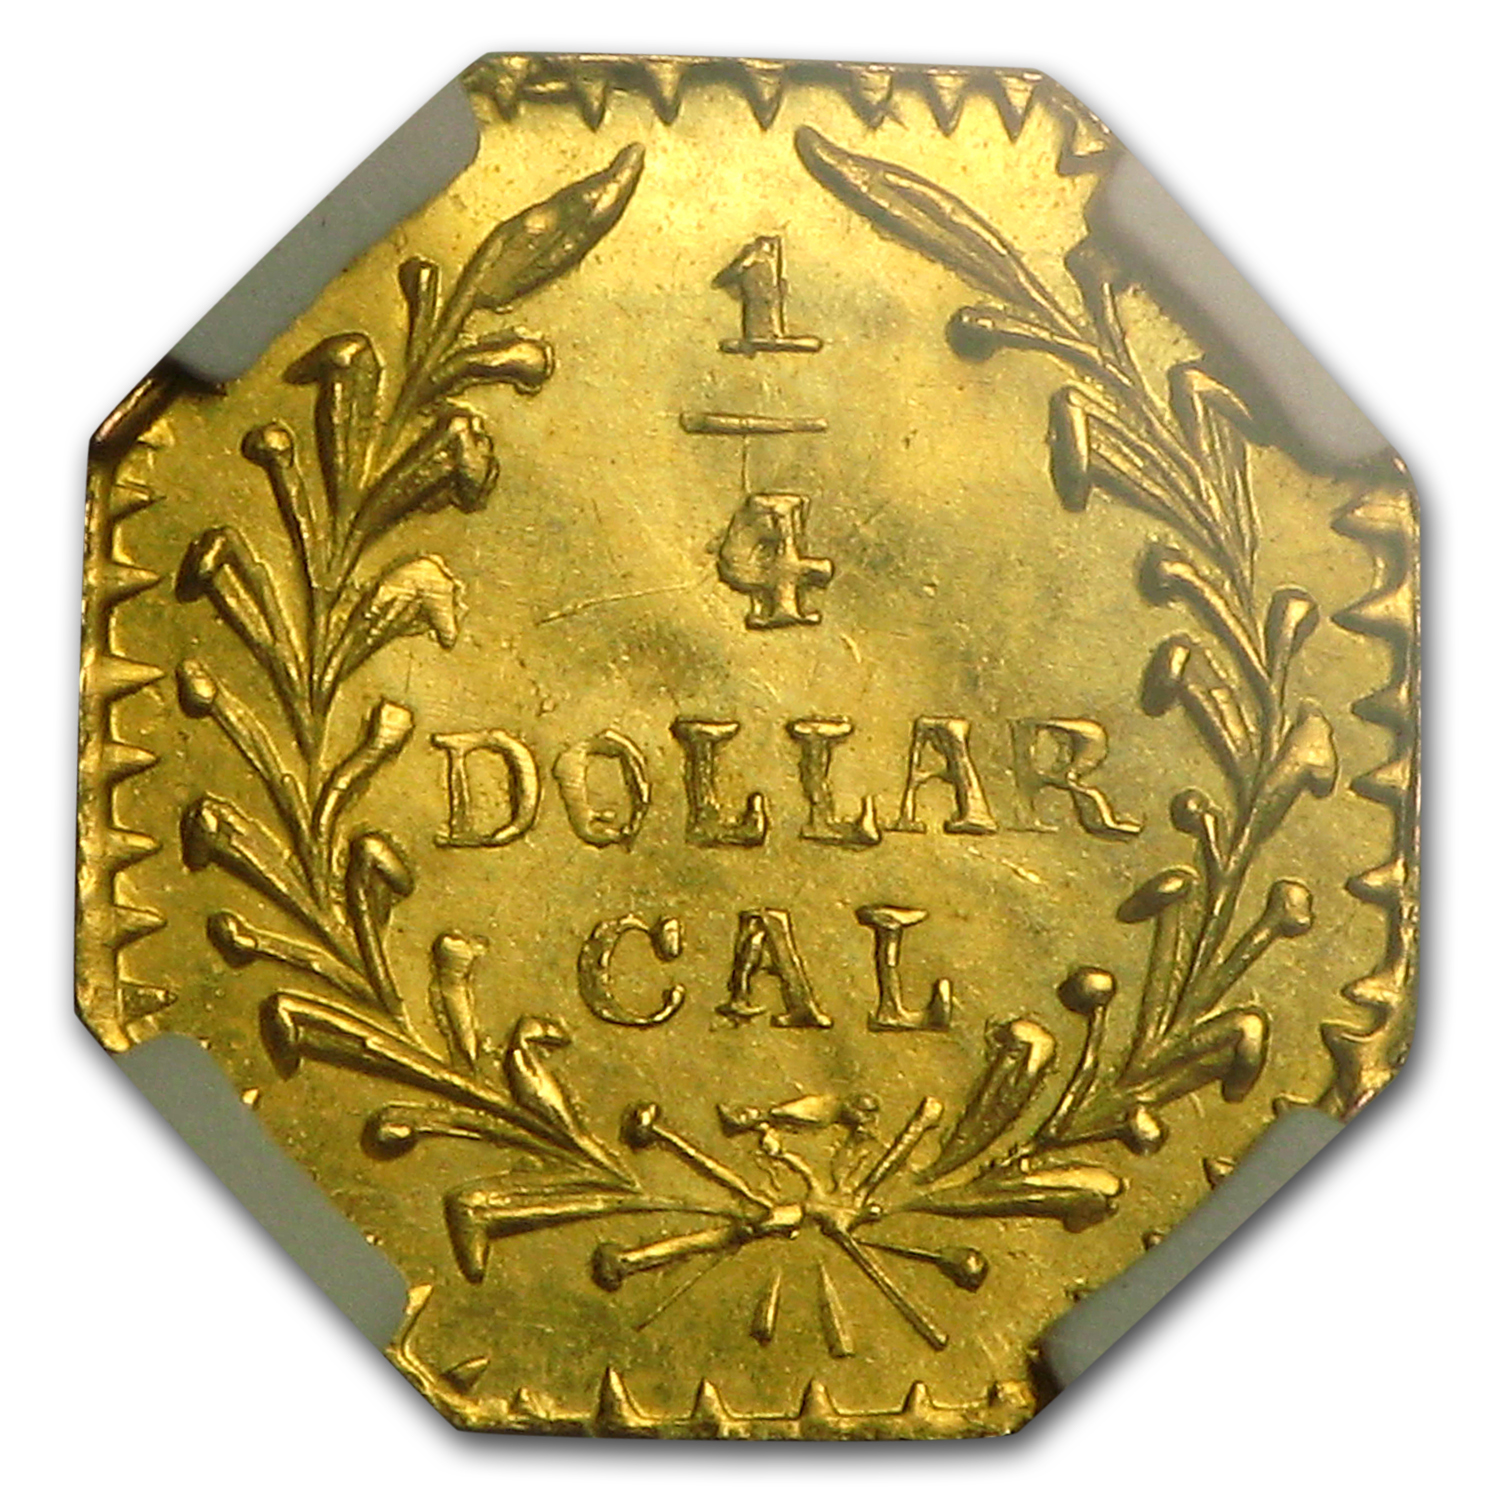 1880 Indian Octagonal 25 cent Gold NGC MS-65 (BG-799X)